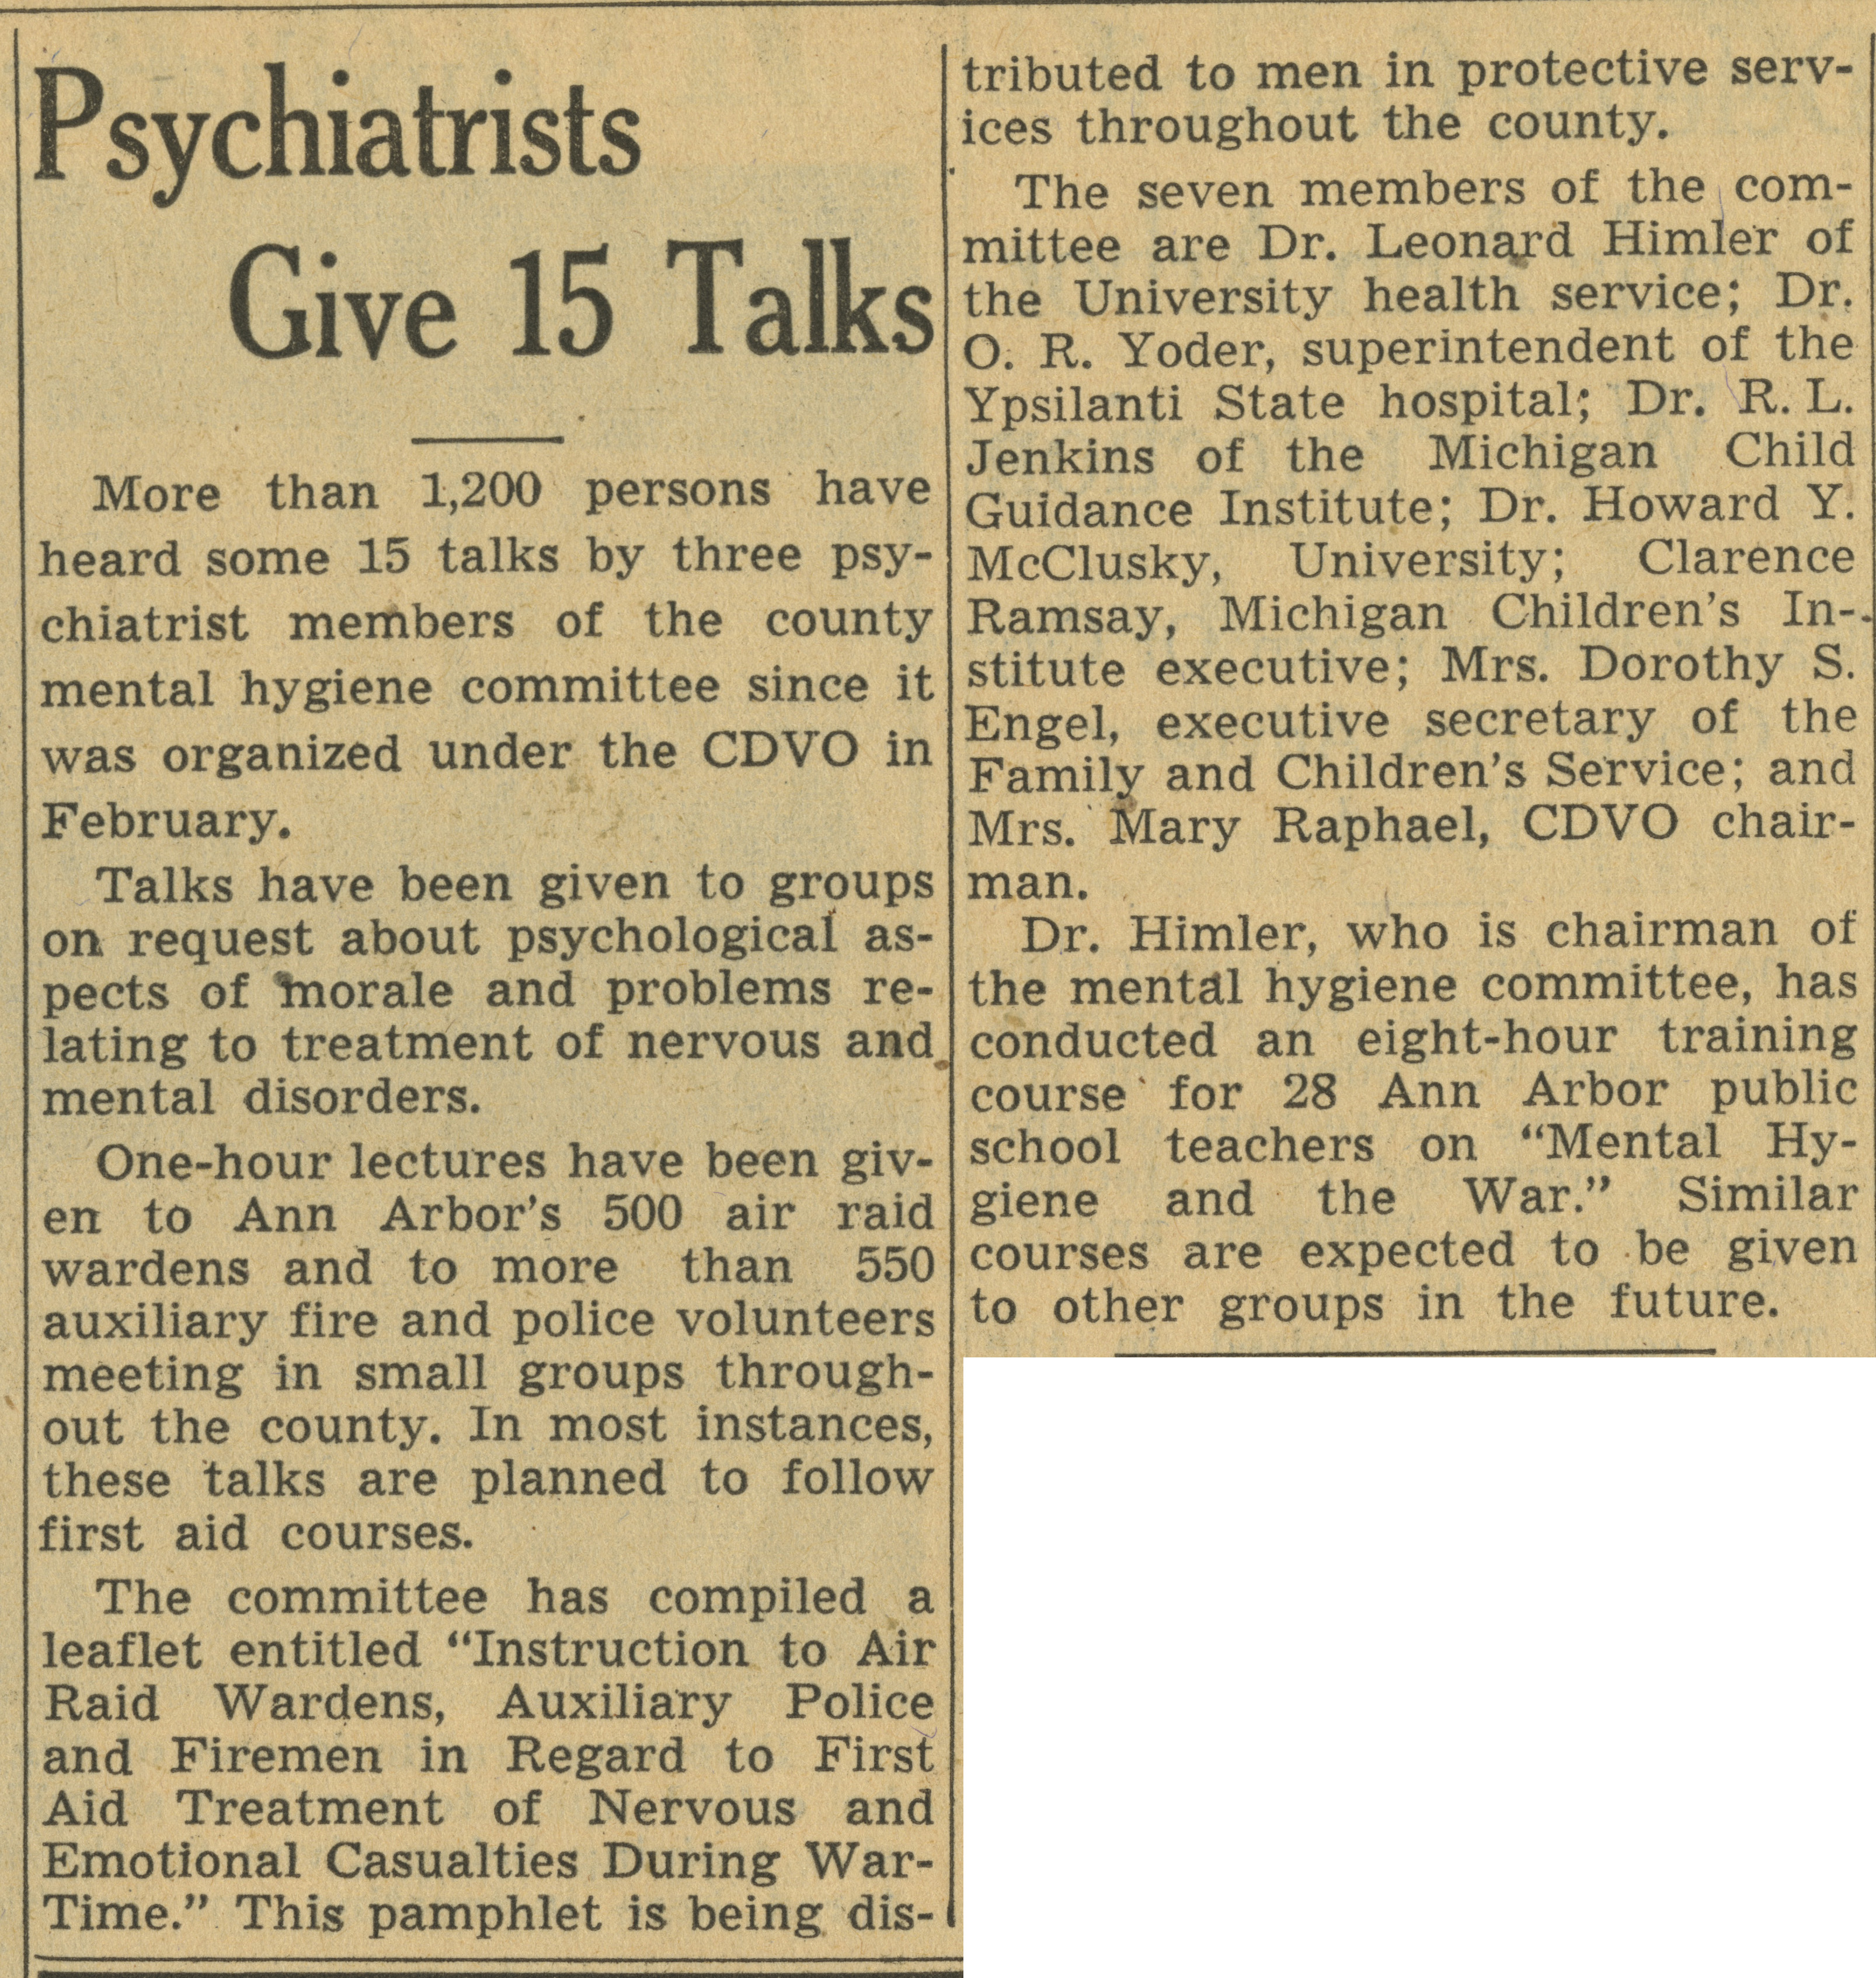 Psychiatrists Give 15 Talks image